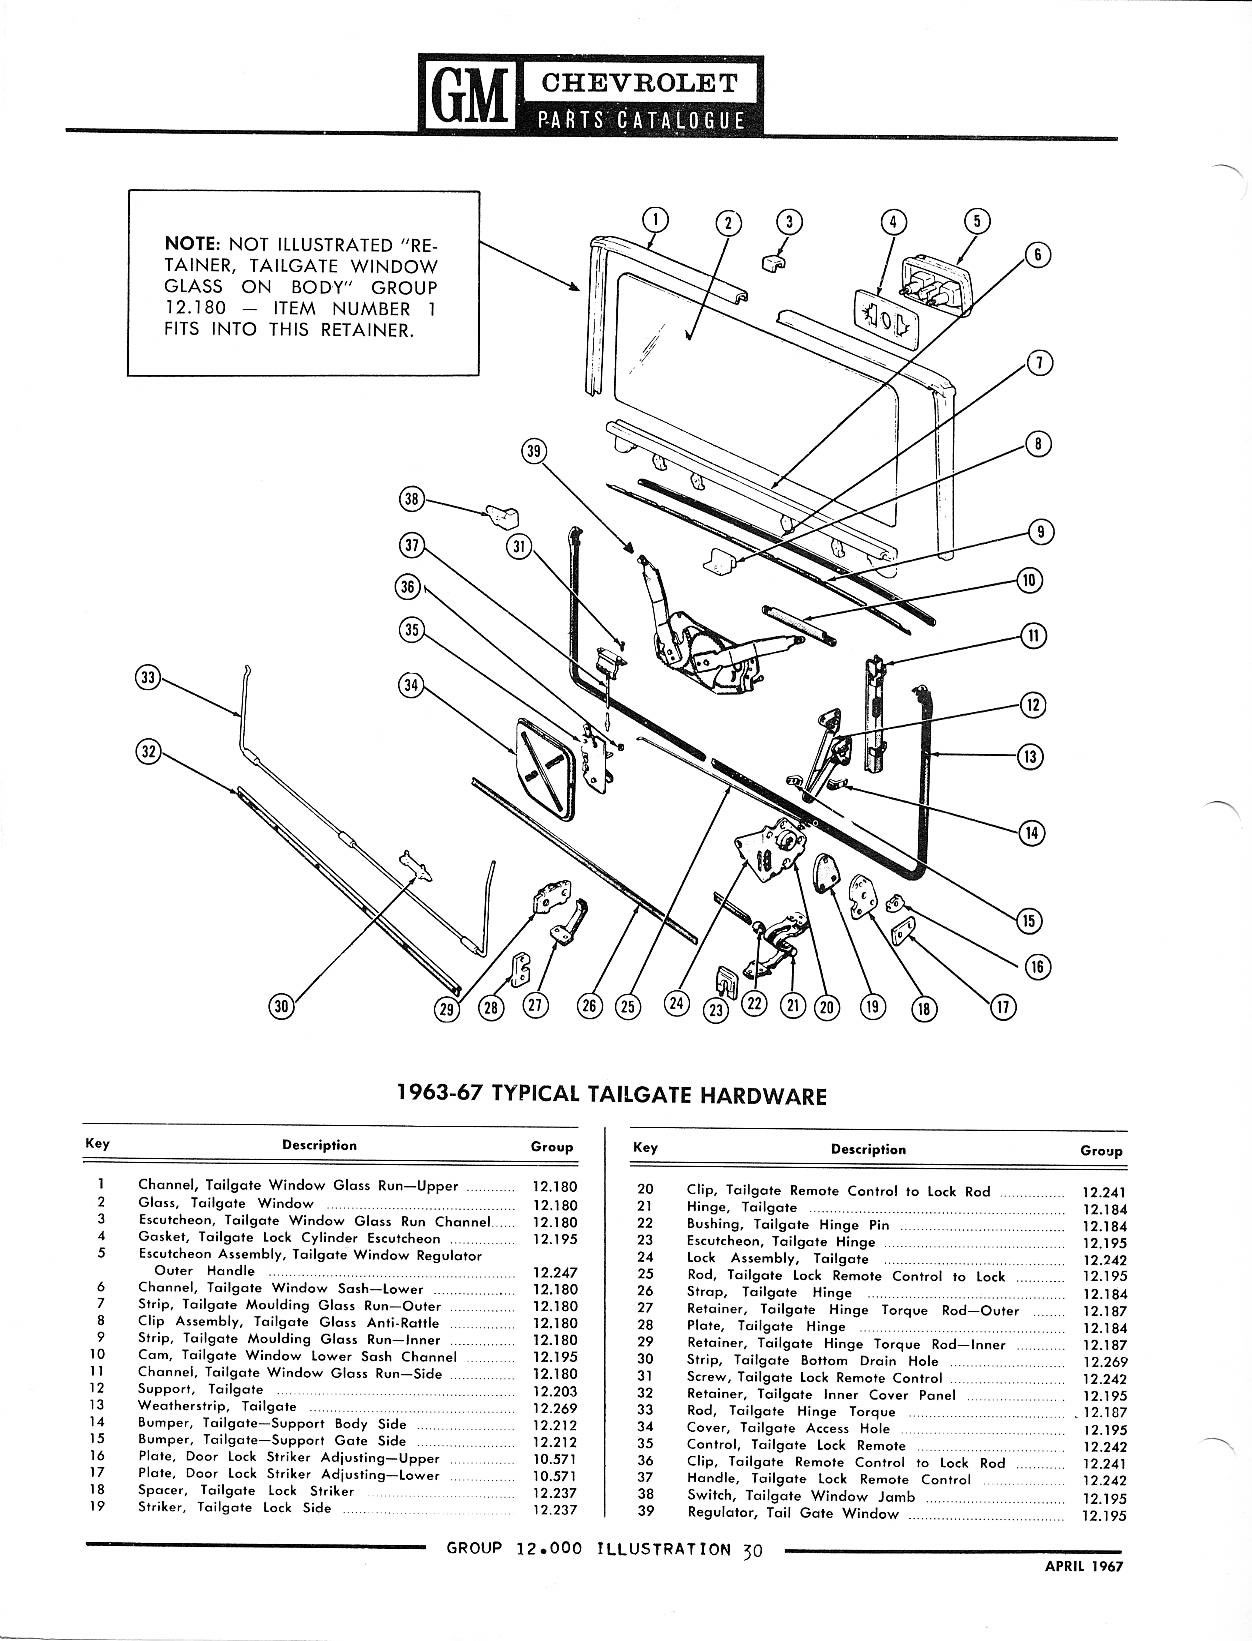 1958-1968 Chevrolet Parts Catalog / Image186.jpg